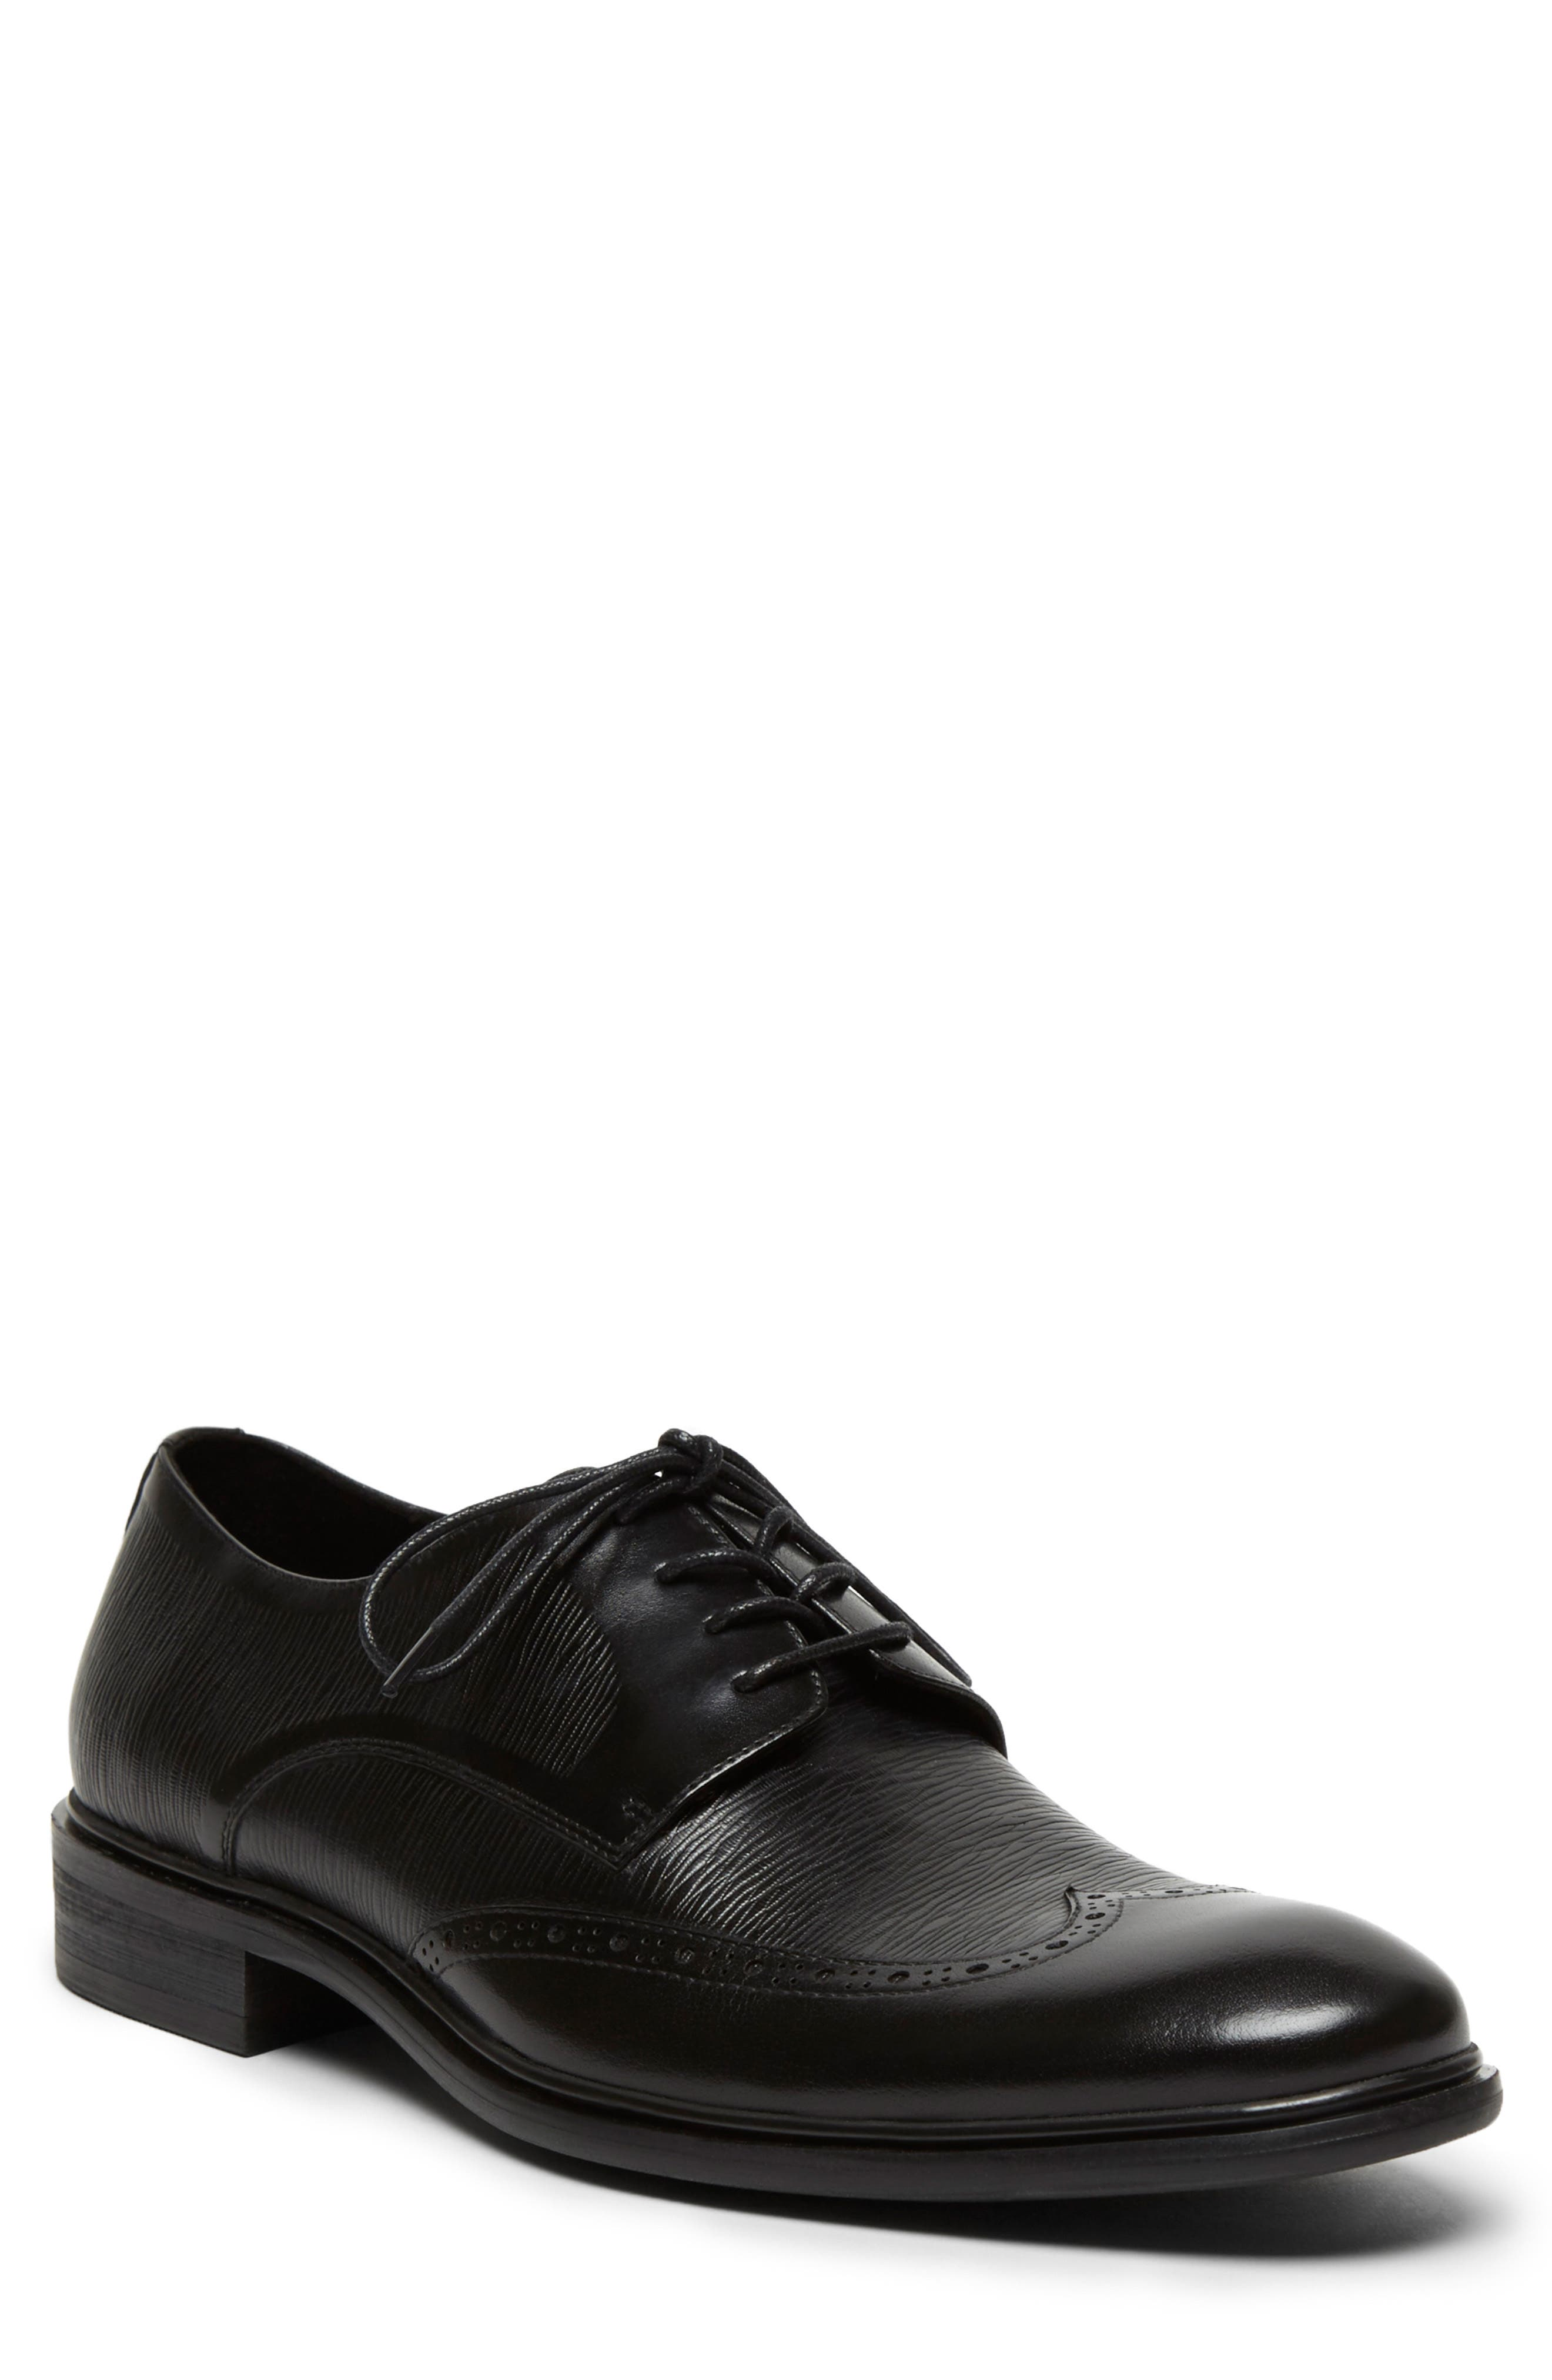 KENNETH COLE NEW YORK, Garner Saffiano Wingtip Derby, Main thumbnail 1, color, BLACK LEATHER